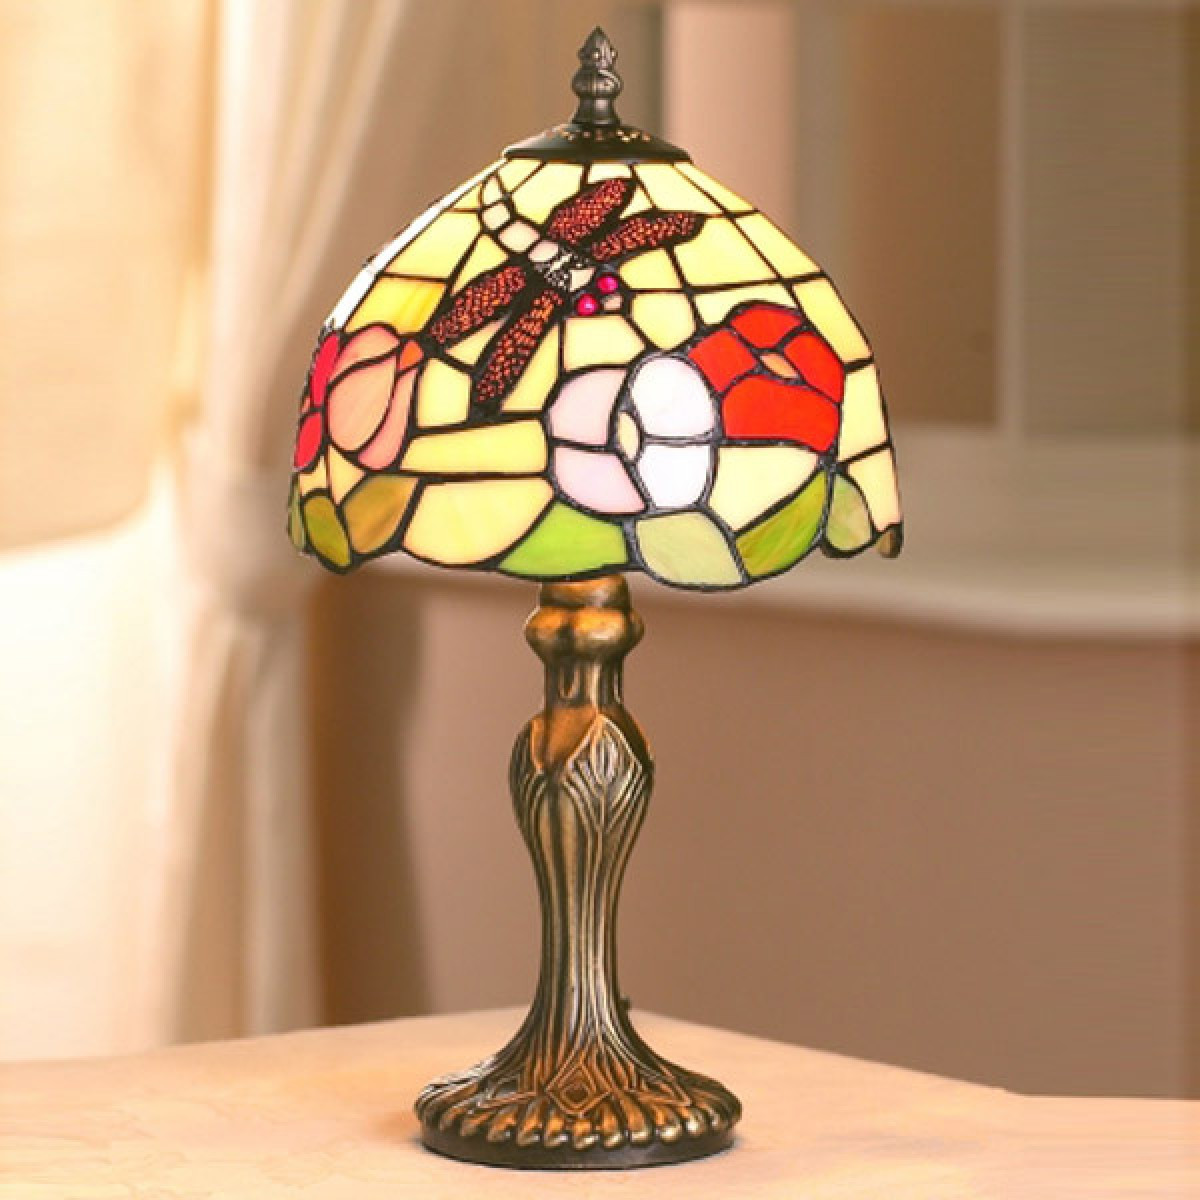 Antique Tiffany Lamps Awesome Tiffany Small Dragonfly Shade Antique Brass Table Lamp 20cms Of Amazing 47 Photos Antique Tiffany Lamps